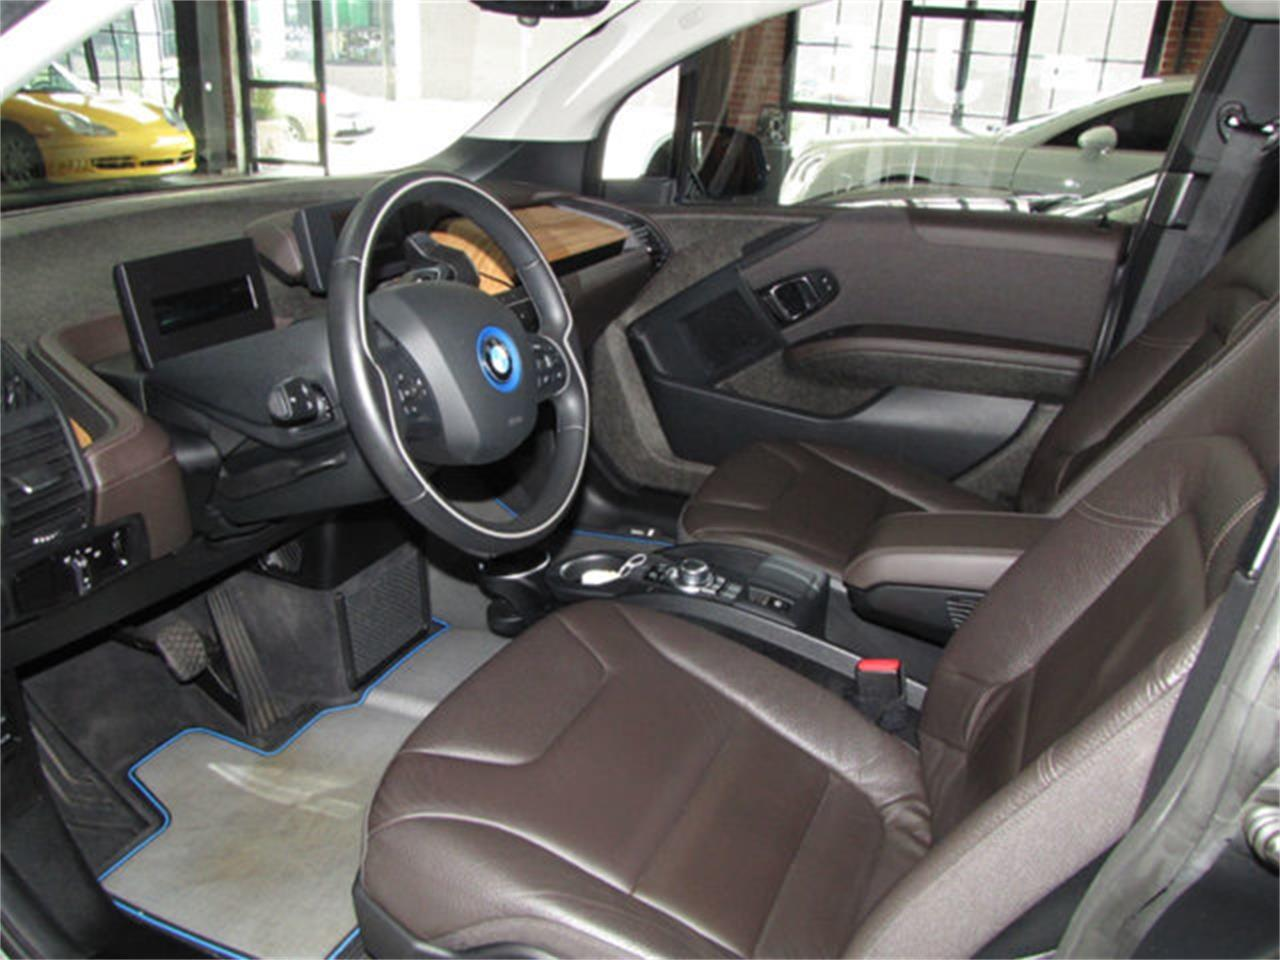 Large Picture of '14 BMW i3 - $17,900.00 Offered by JEM Motor Corp. - LFVL